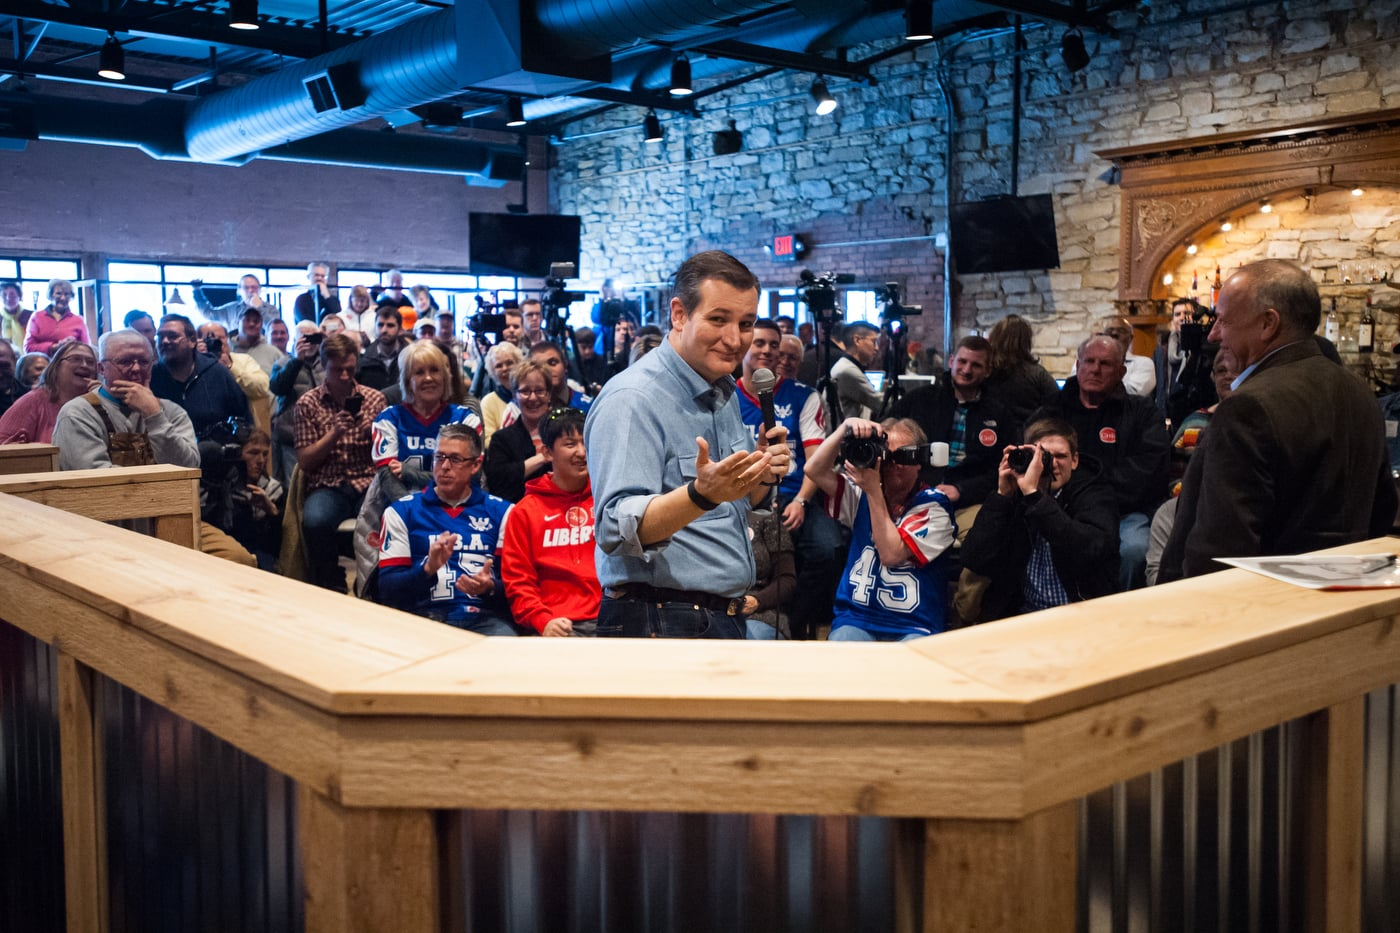 U.S. Republican presidential candidate Ted Cruz speaks at a Rustix Restaurant and Event Center in Humboldt, Iowa January 7, 2016. REUTERS/Mark Kauzlarich